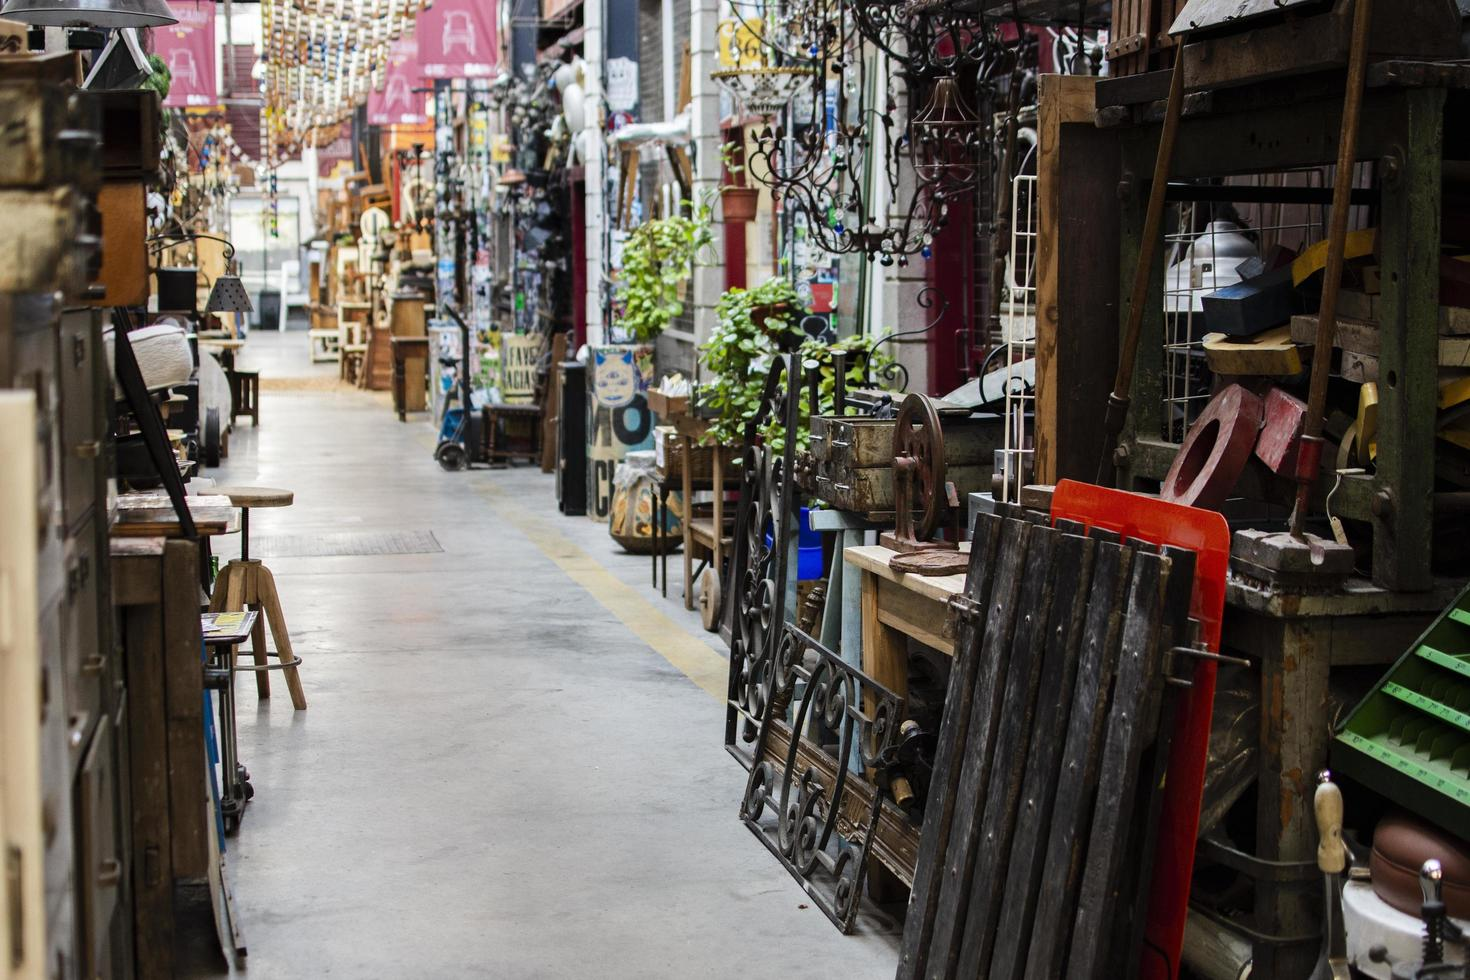 Arrangement of old objects in an antiques market photo